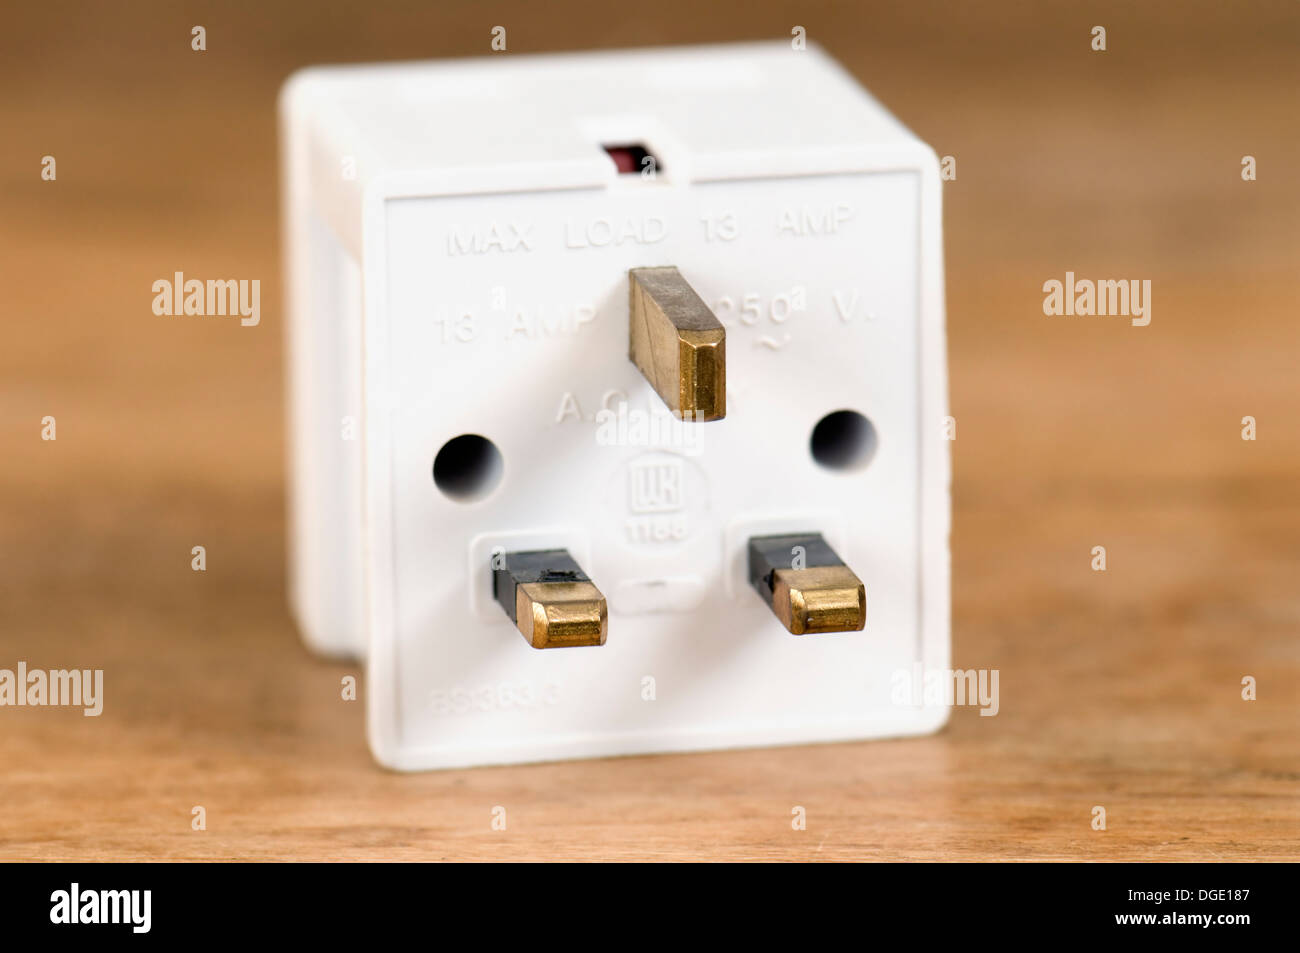 3 way plug adaptor 13 amp on wooden table top - Stock Image